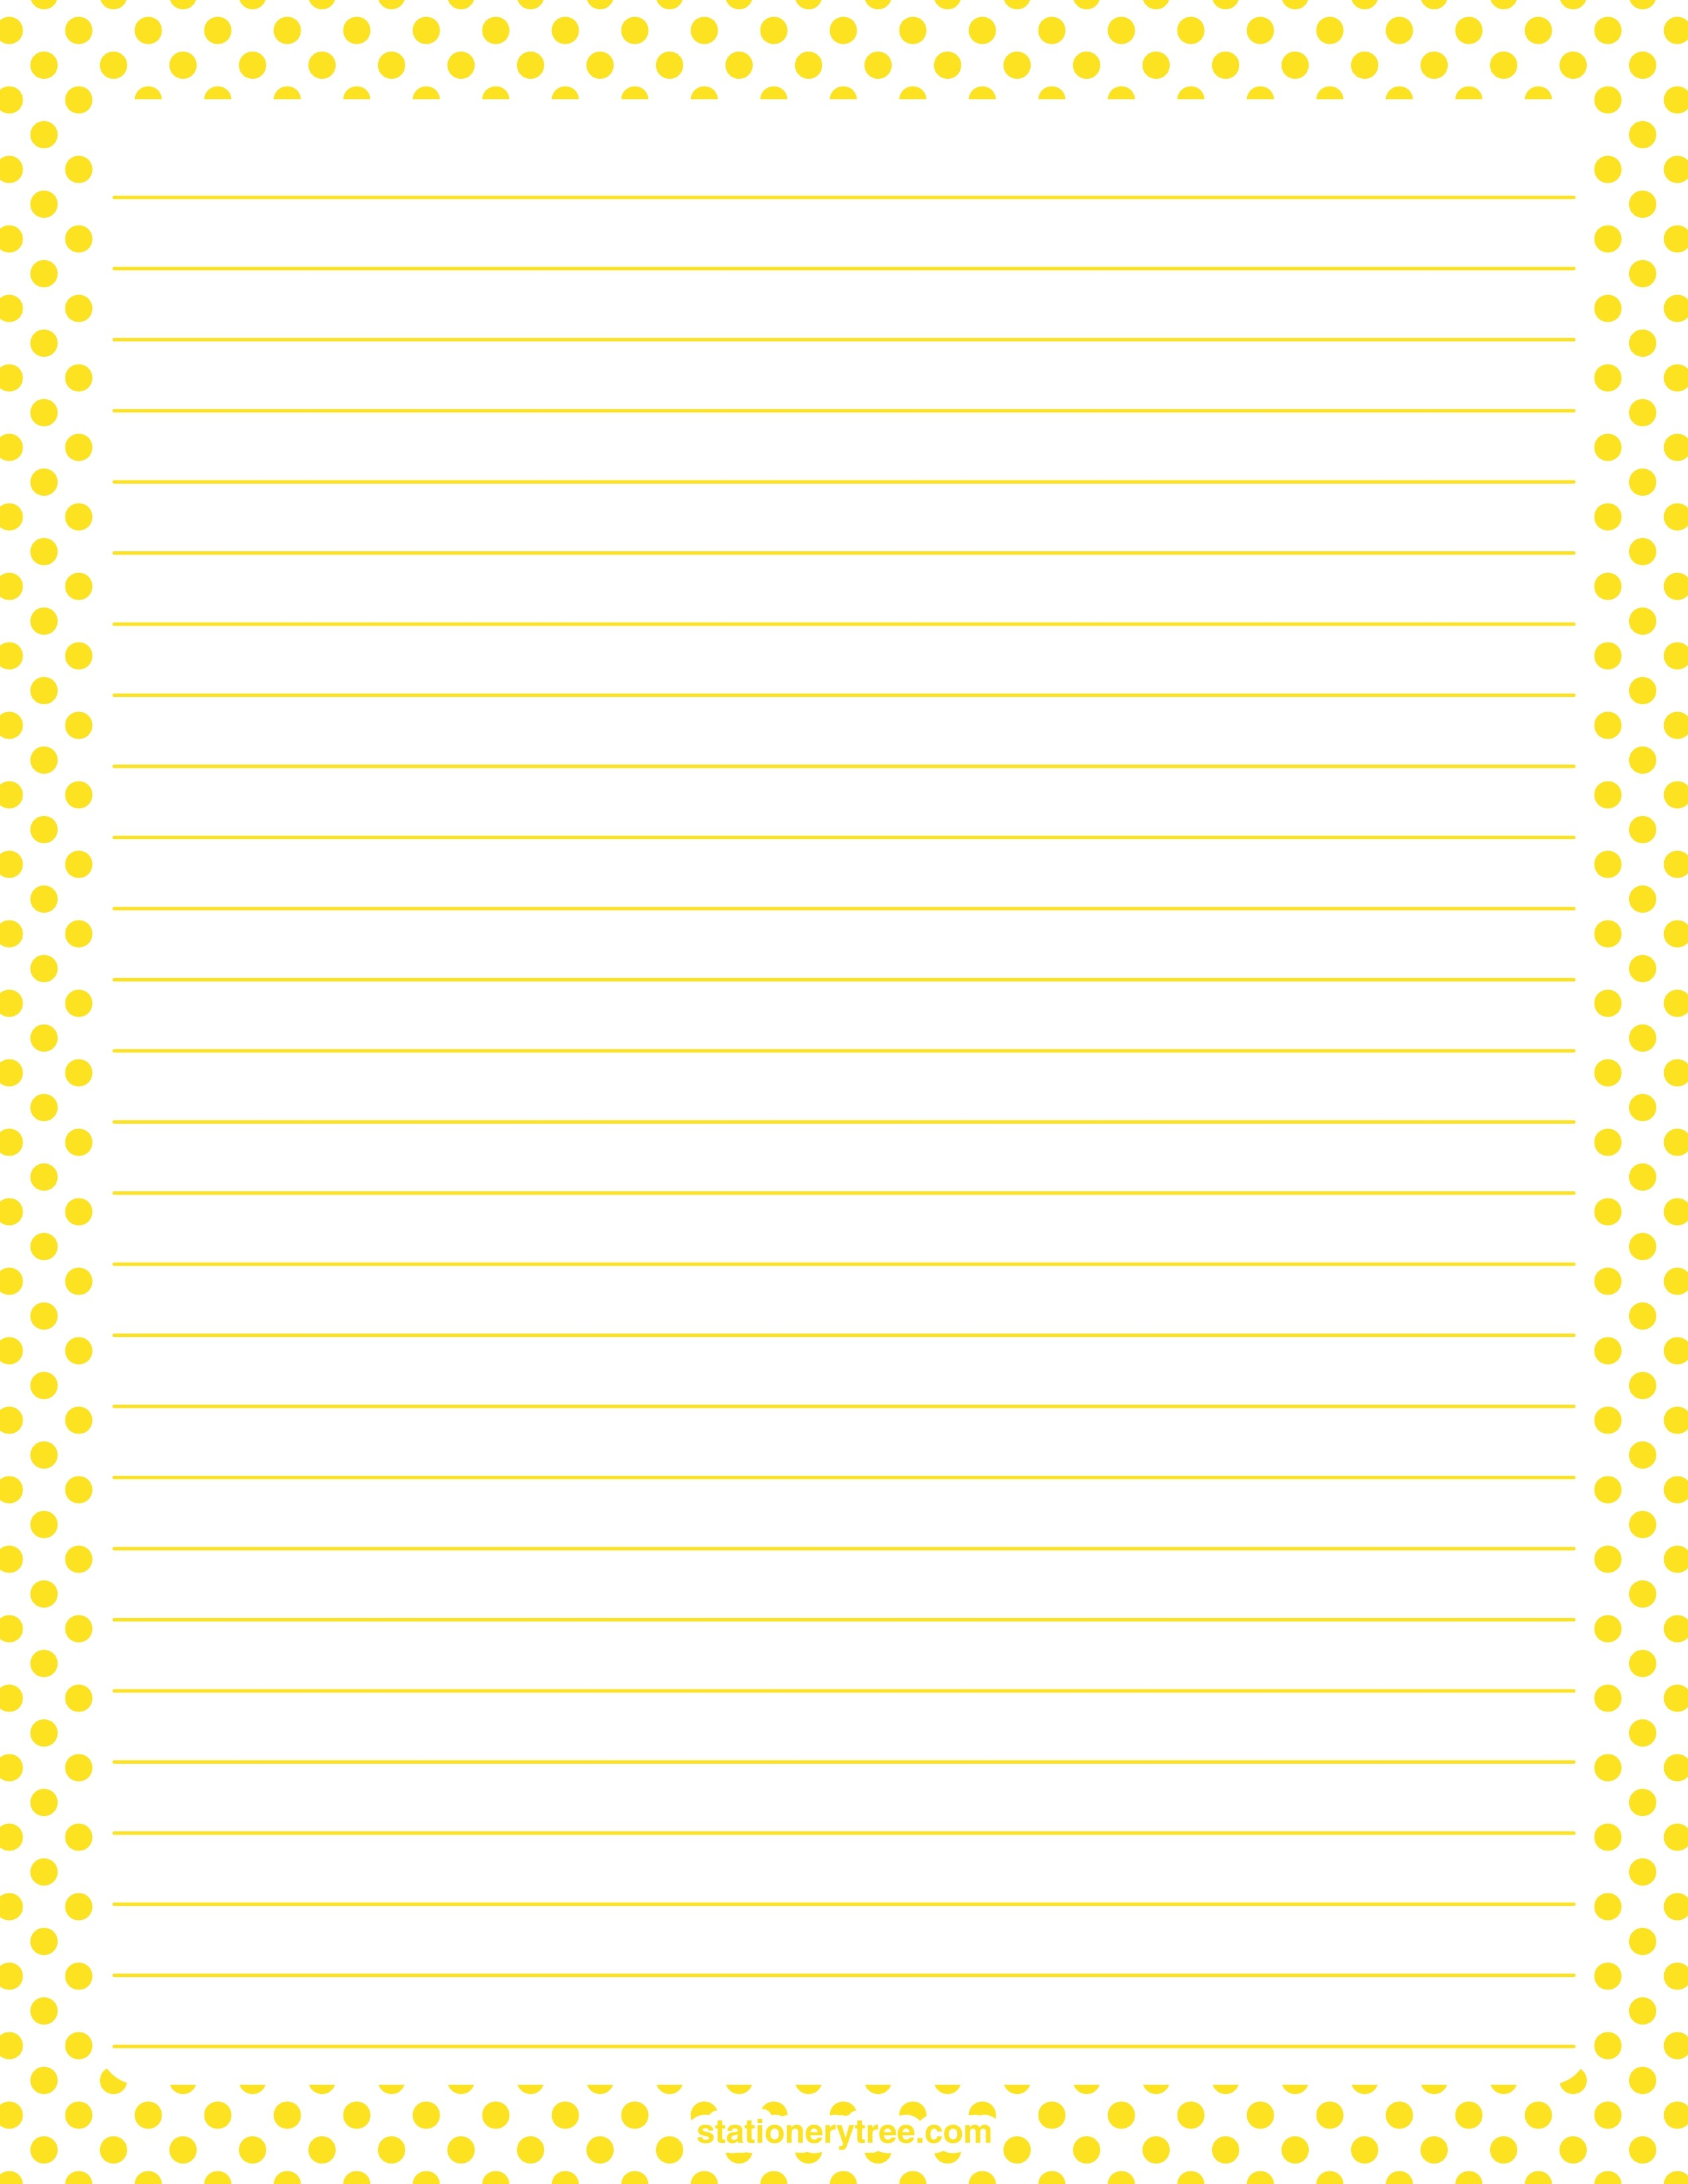 Printable yellow and white polka dot stationery and writing paper Multiple versions available with or